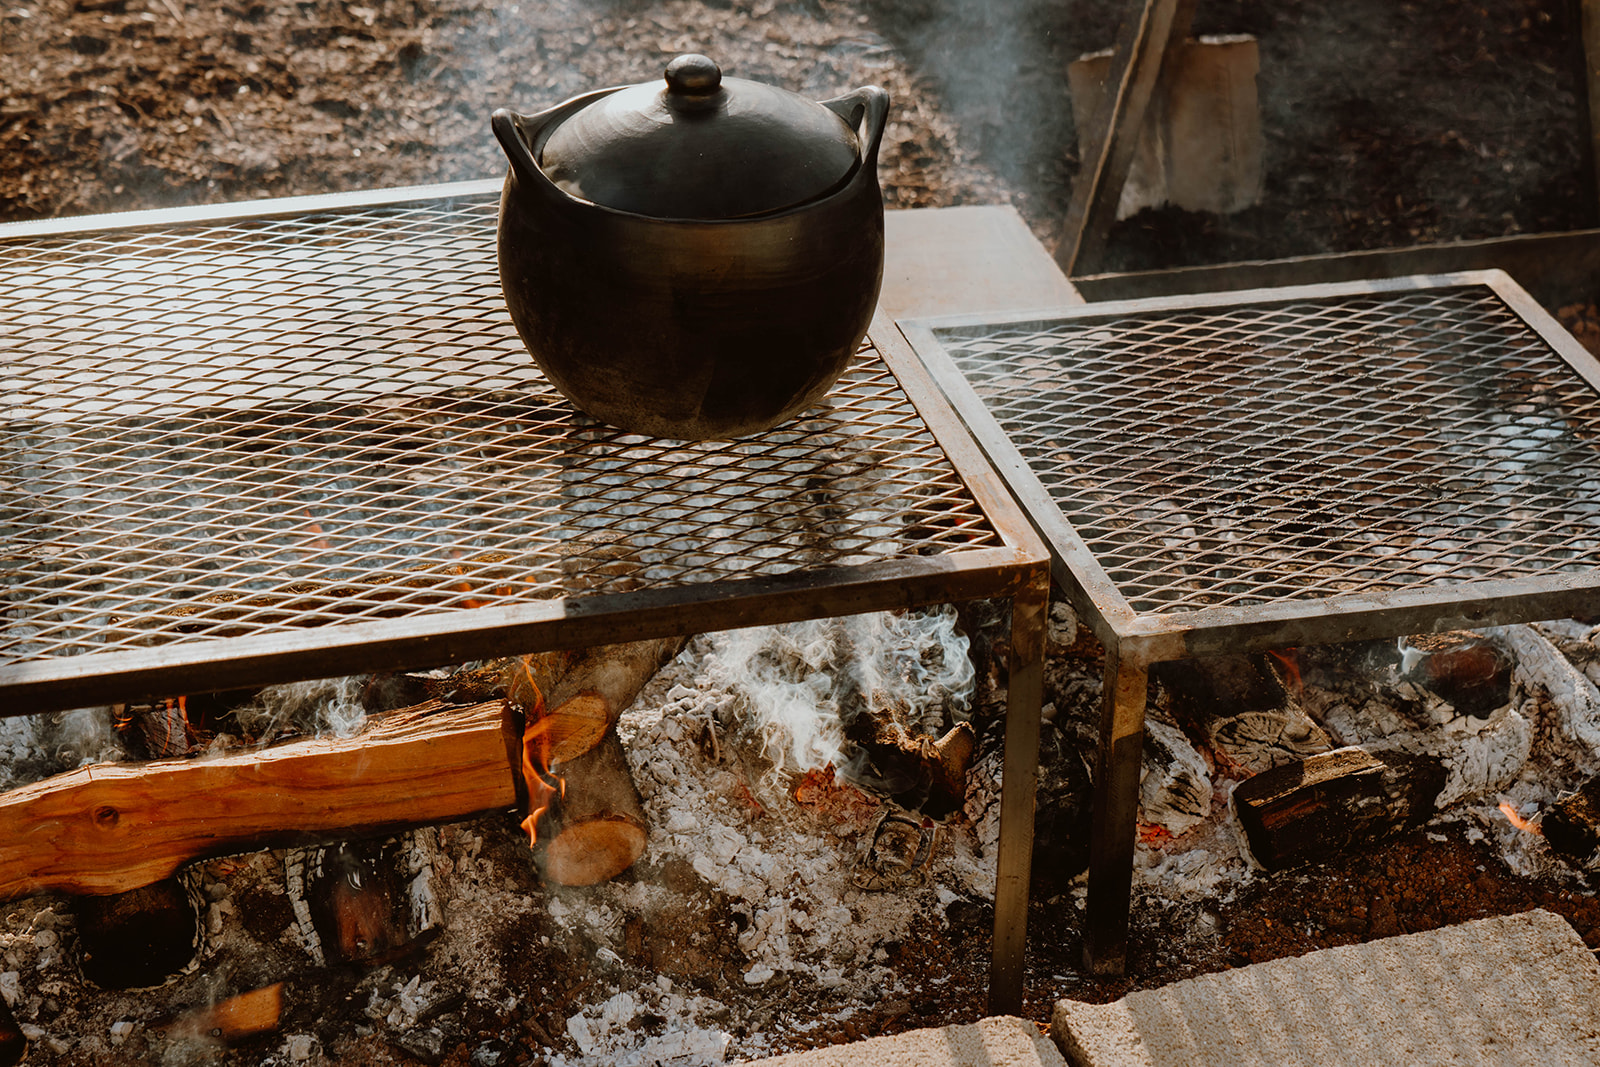 Pot rest on a grill grate over open woodfire.